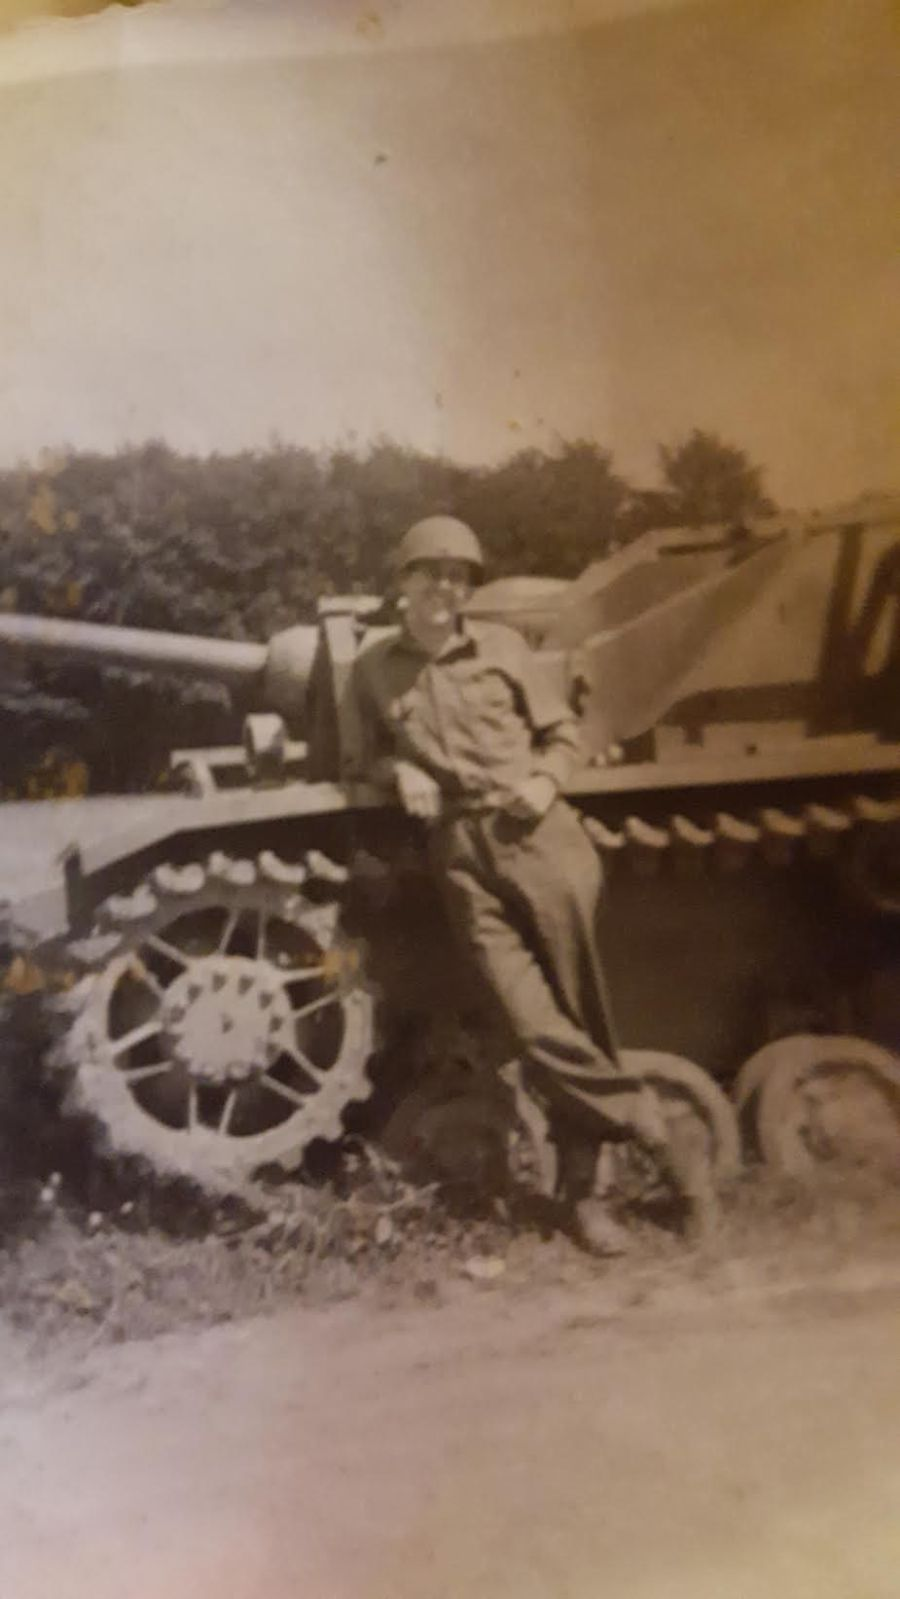 Cpl. Joe Cigich stands in front of the Sherman tank somewhere in Europe. He was a member of 135th Anti-aircraft battalion, part of General Omar Bradley's 9th Army that marched through Europe during World War II. Photo provided